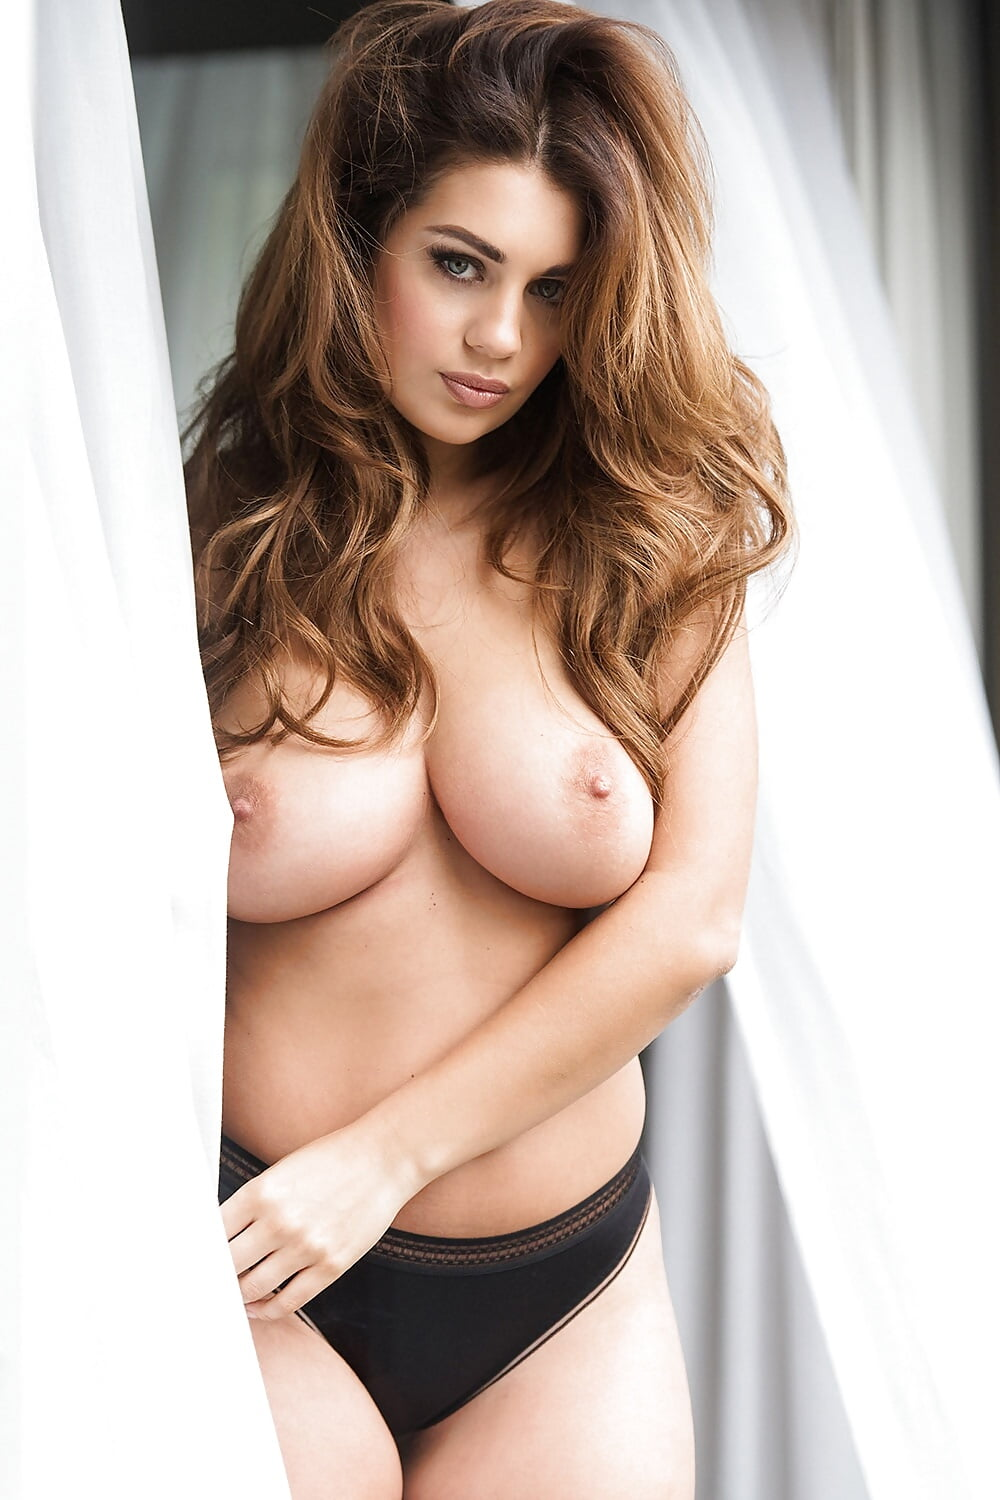 free-pictures-of-ladies-topless